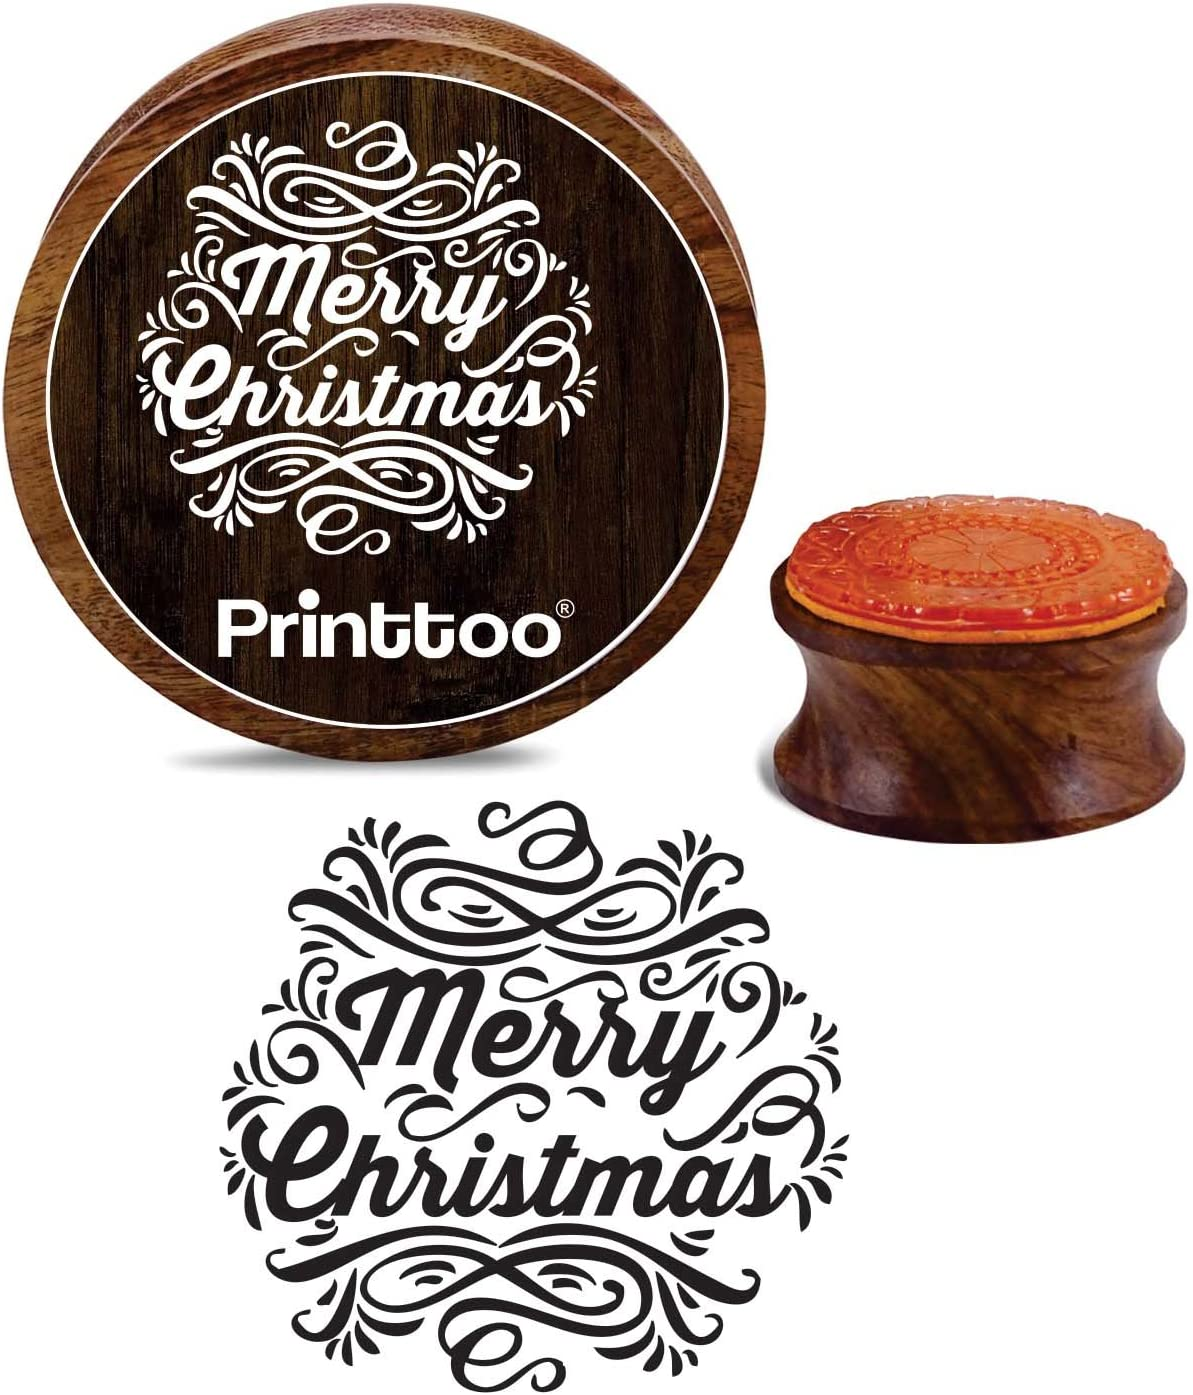 Printtoo Round Wooden Rubber Stamp Merry Christmas Scrap-Booking Craft Textile Stamps-2 Inch